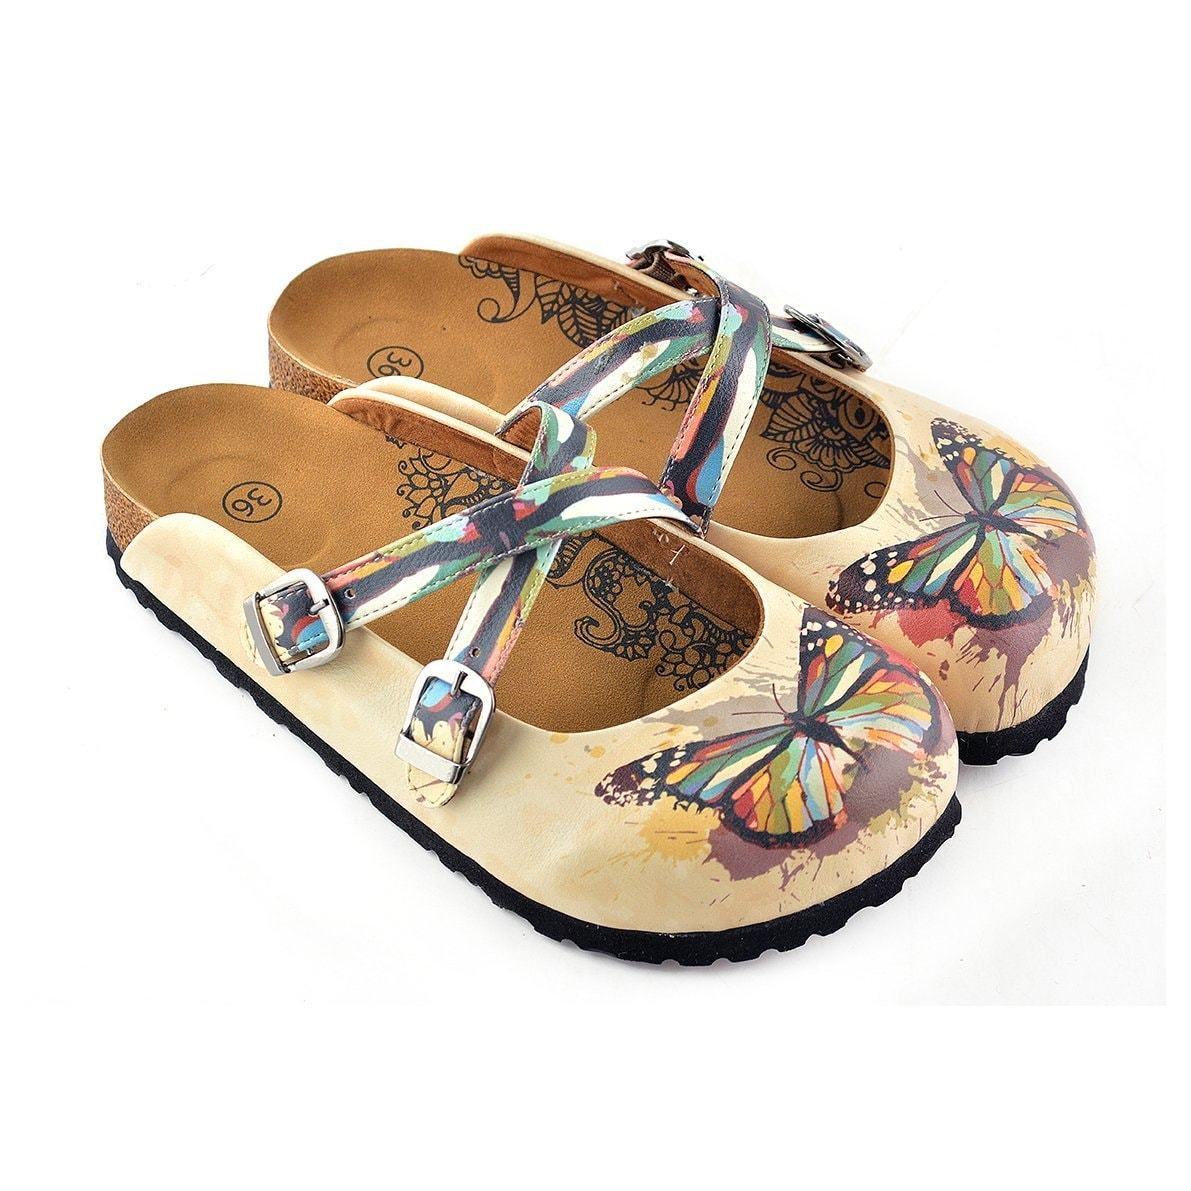 98c1ba3f5e46 Colorful Butterflied Patterned Clogs - WCAL119 ...